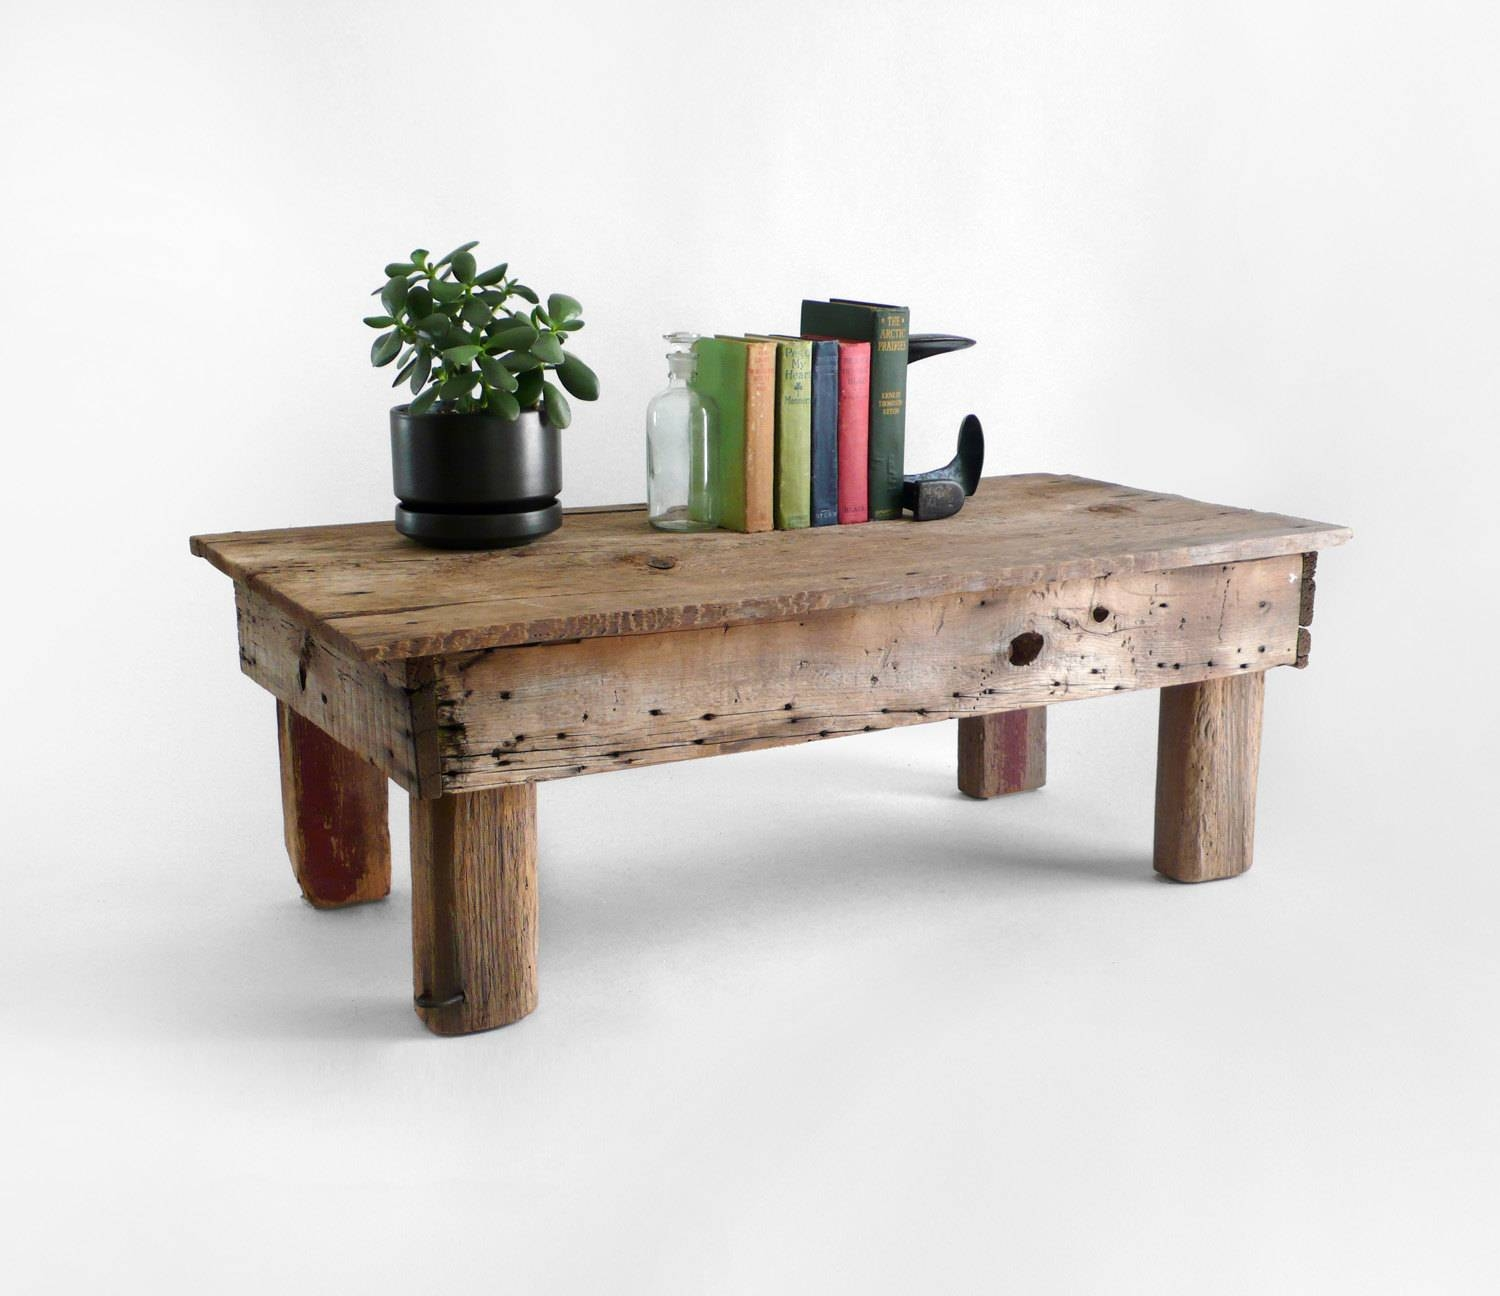 Coffee Table: Astonishing Rustic Wooden Coffee Table Design Ideas regarding Rustic Wooden Coffee Tables (Image 5 of 15)